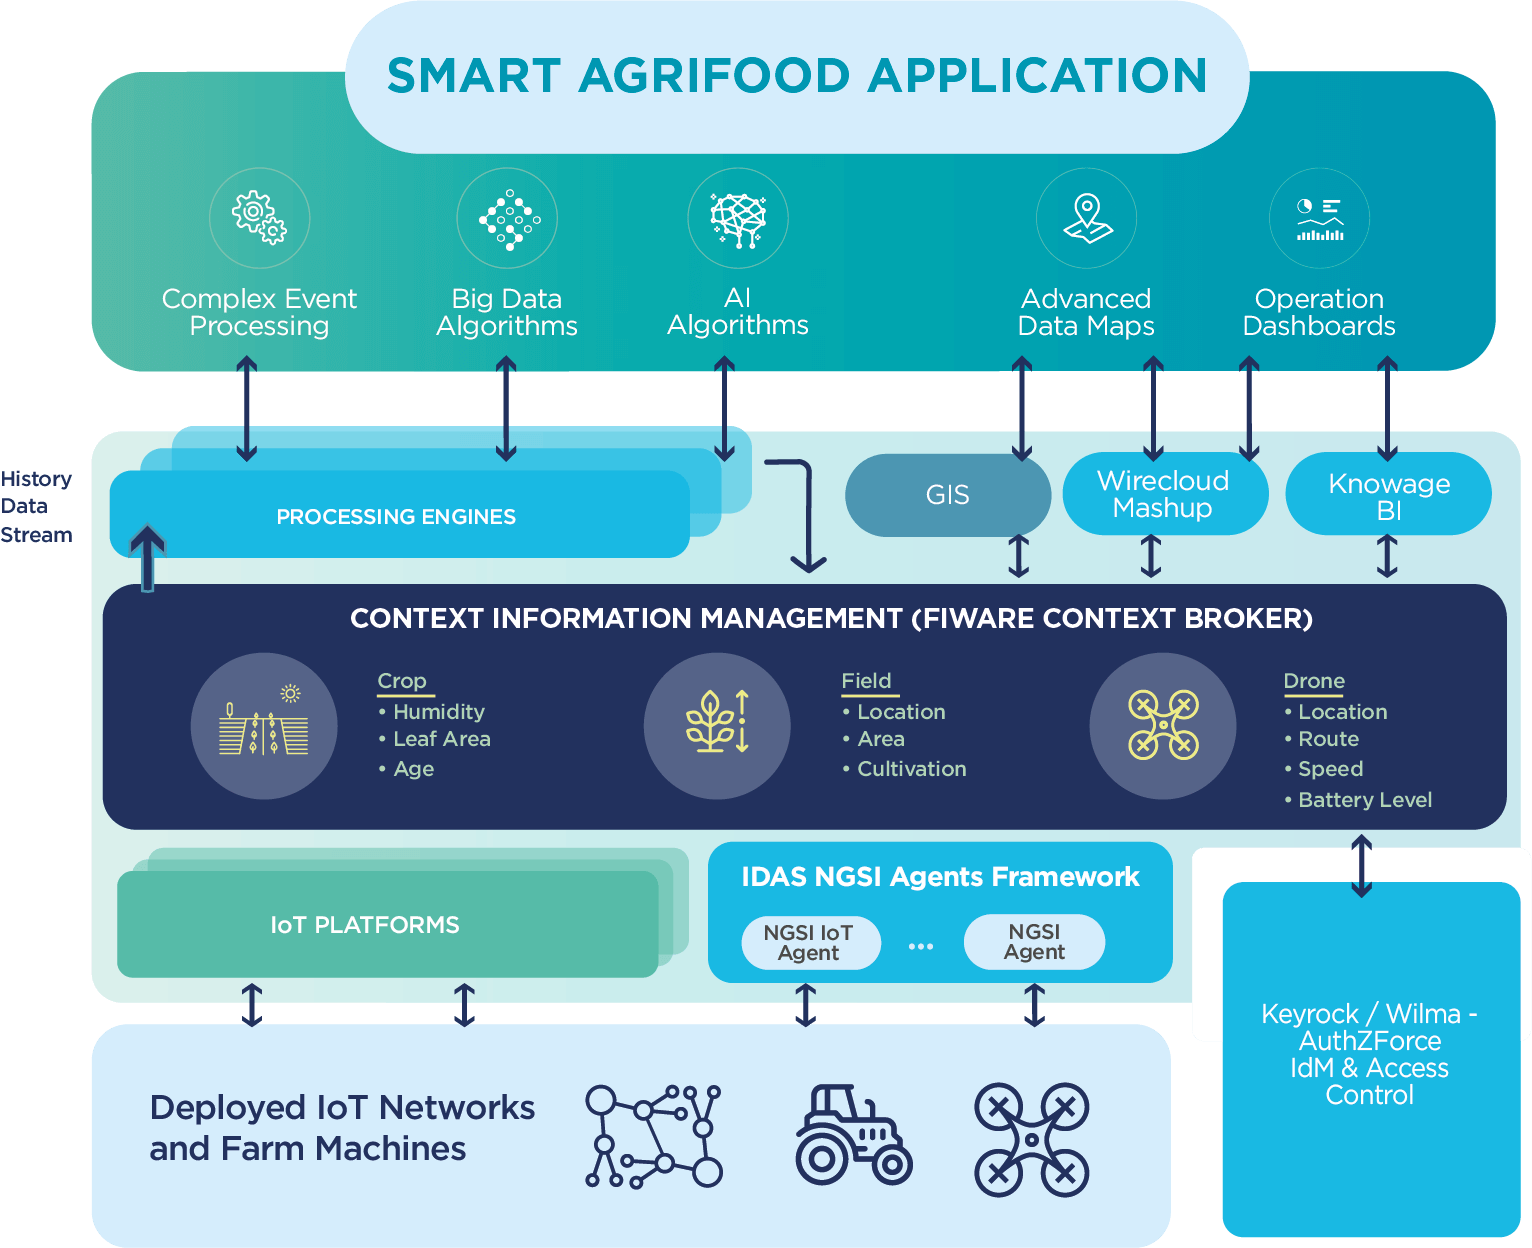 Smart Agrifood - FIWARE Foundation Open Source Platform